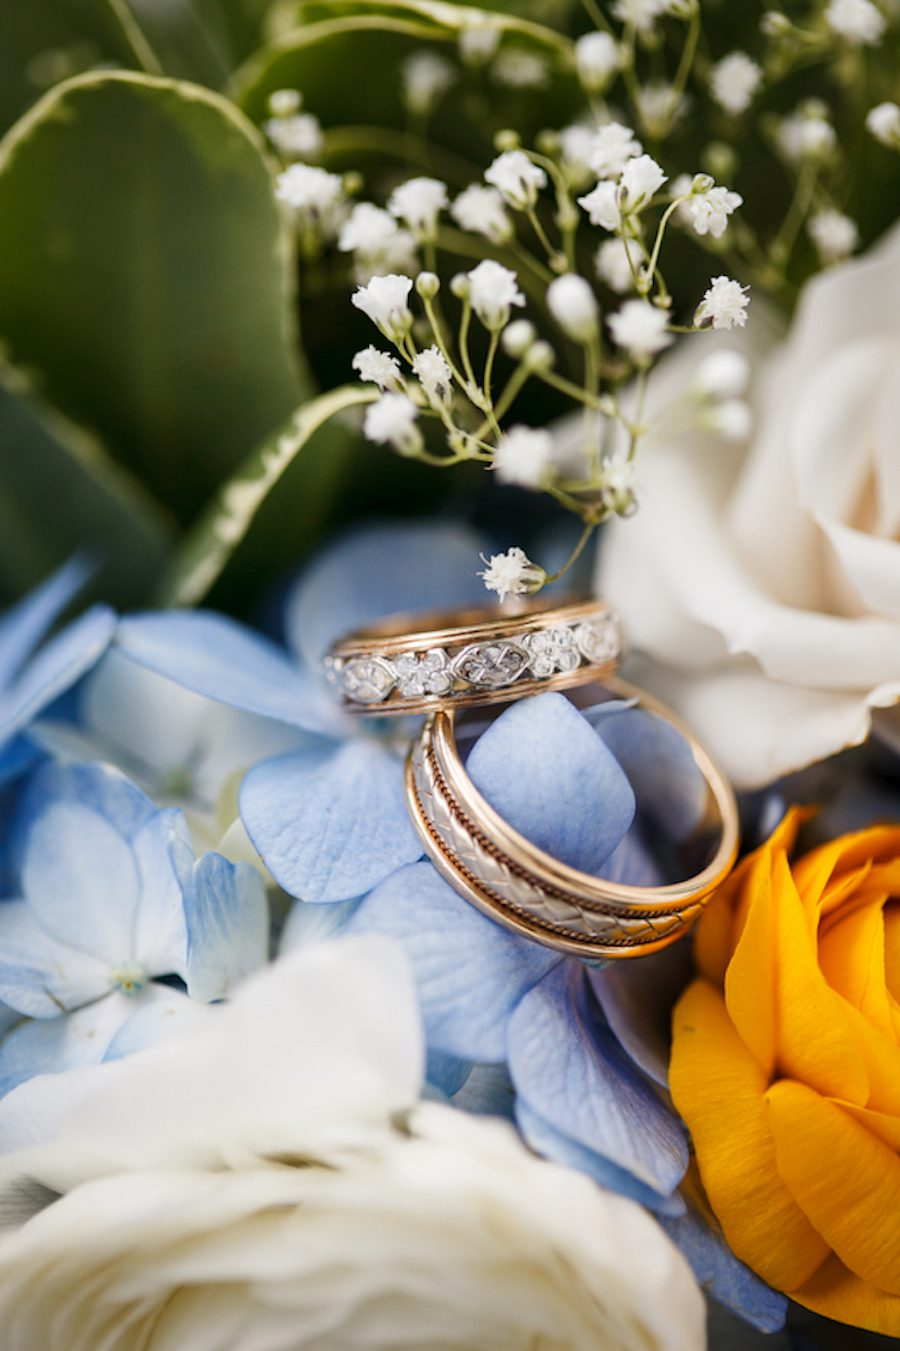 Bosch_Wedding_Bloomsbythebox_KimCraven_2 Charming Cape May Wedding Featured on Classic Bride Blog